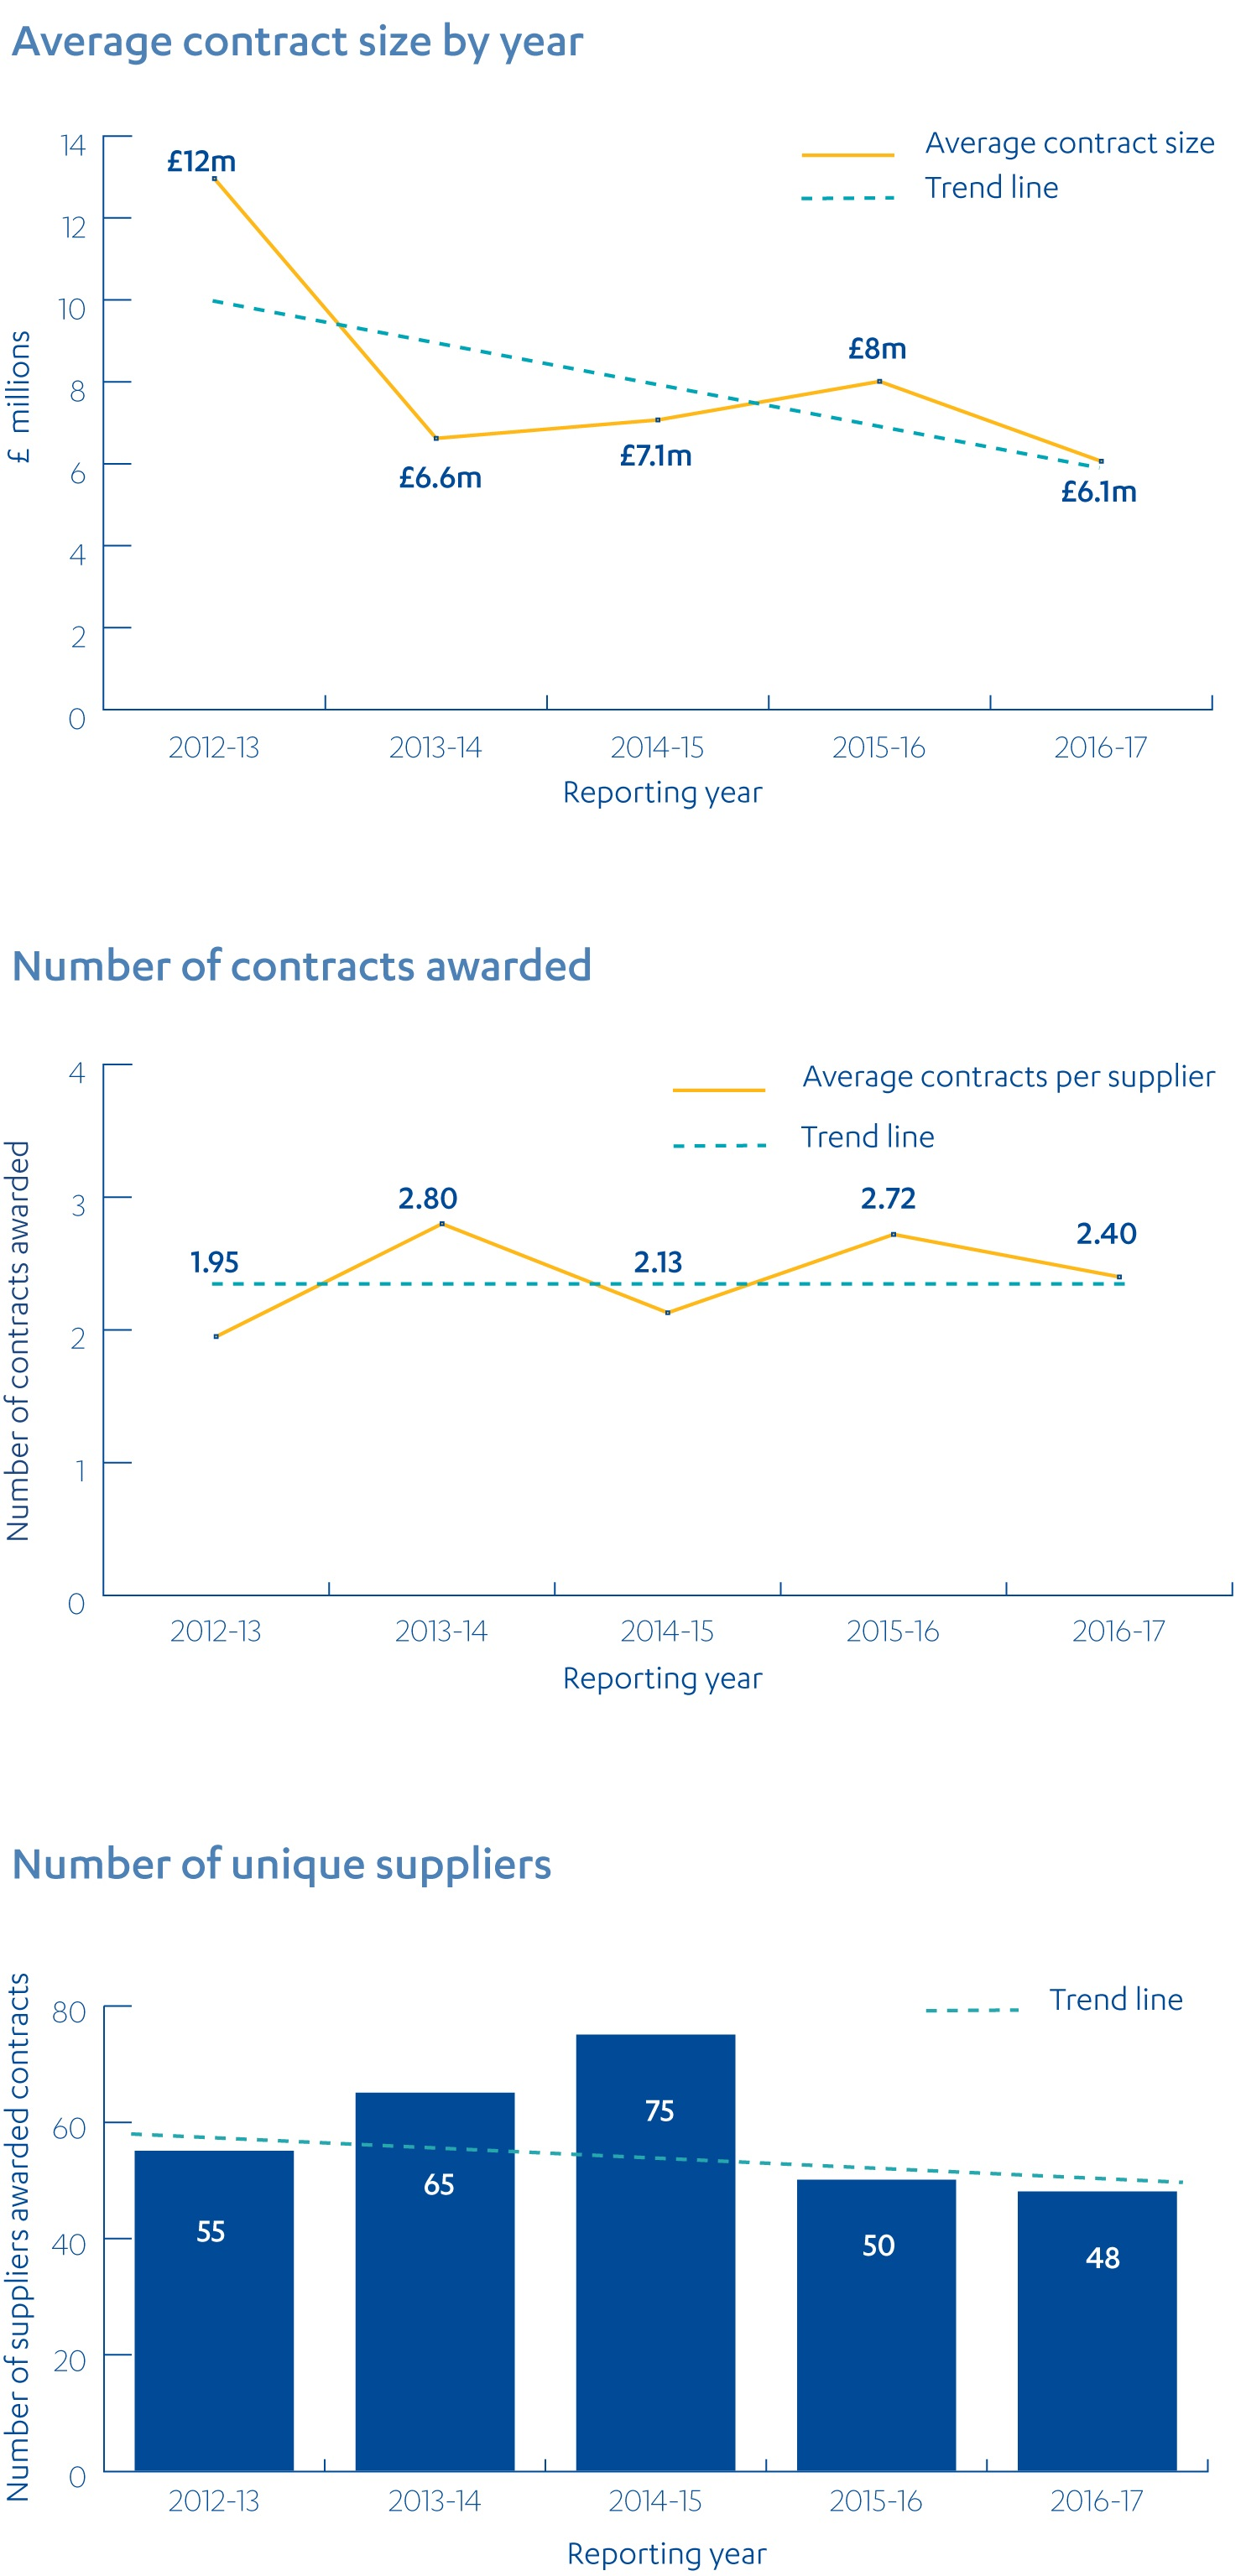 Two line and one bar chart showing average contract size, number of contracts awarded and number of unique suppliers per year from 2012-13 to 2016-17.from 2012-13 to 2016-17